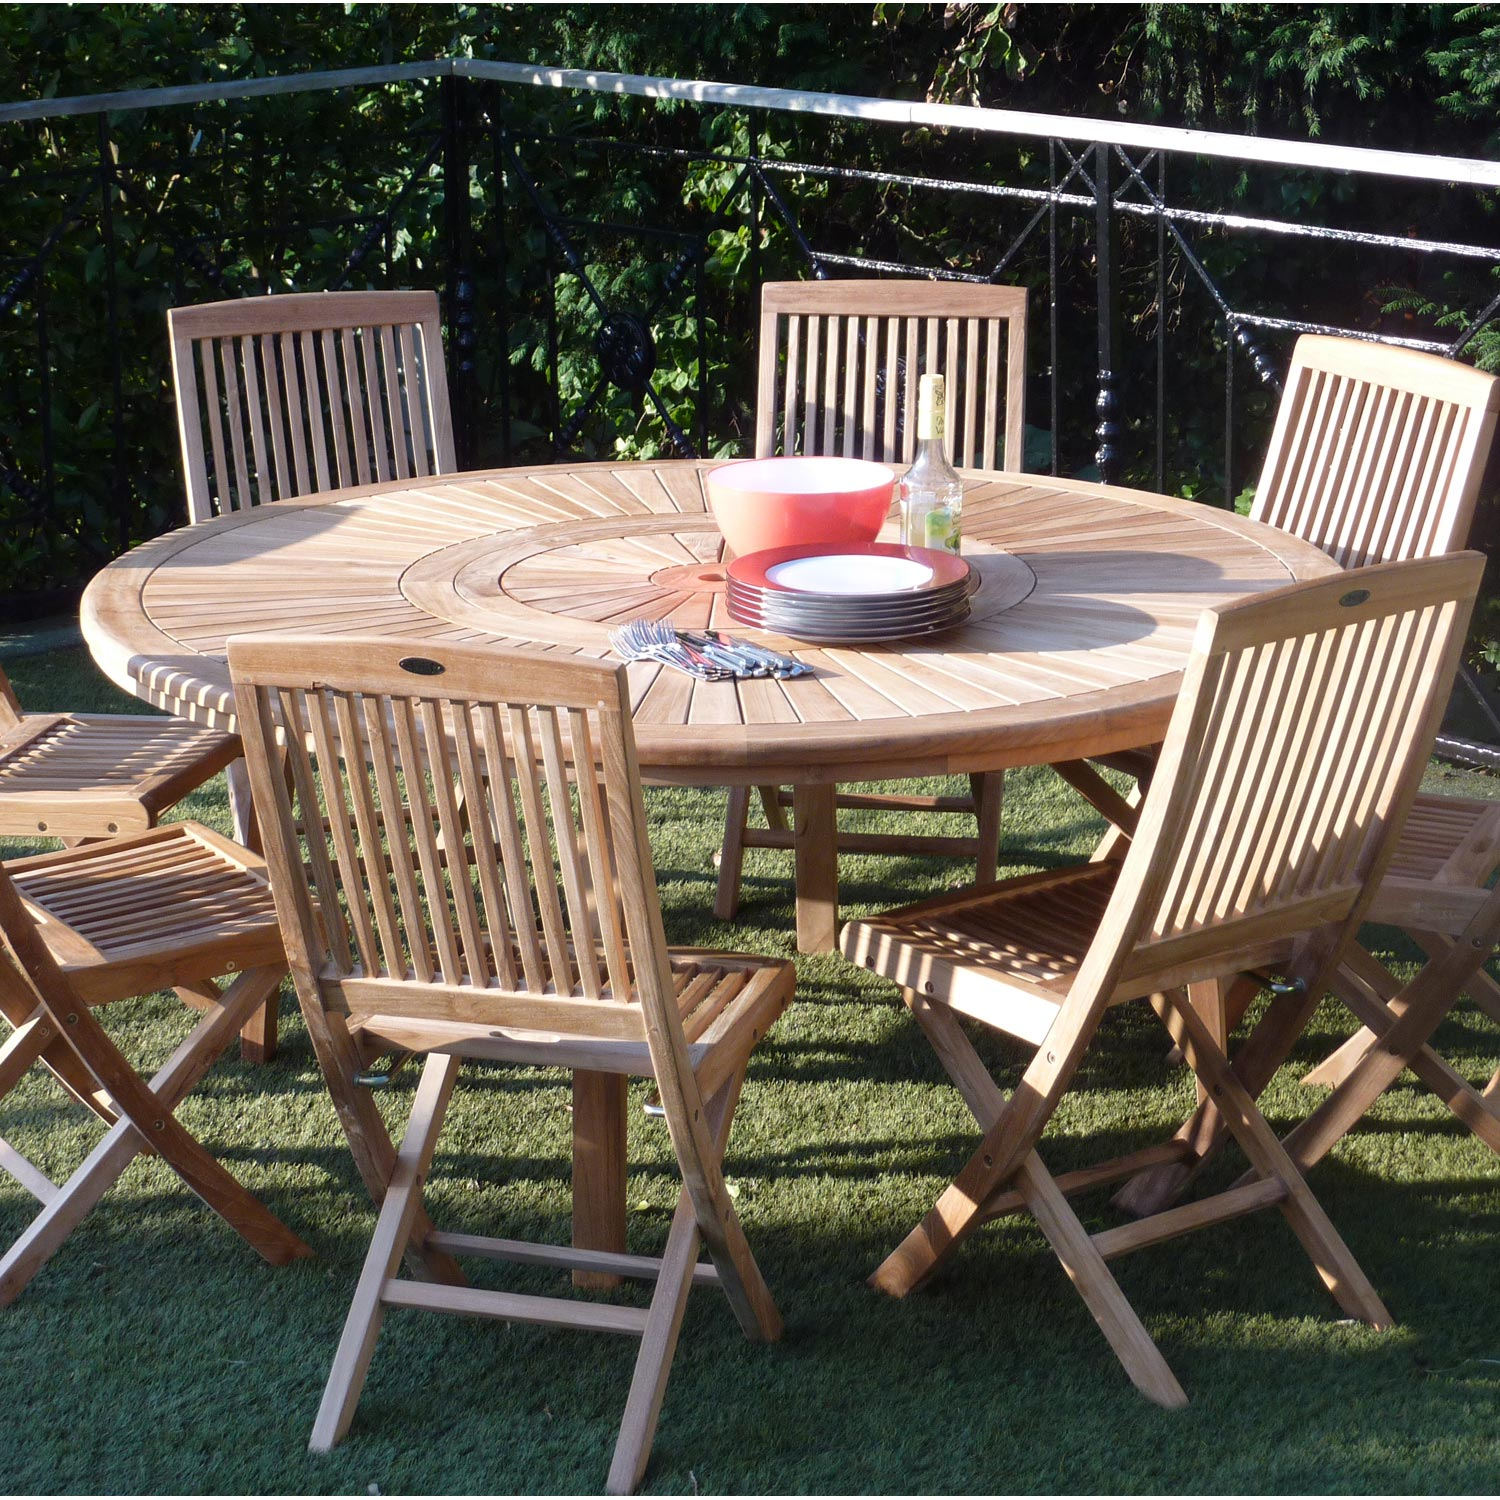 Salon de jardin Orion bois naturel, 8 personnes | Leroy Merlin